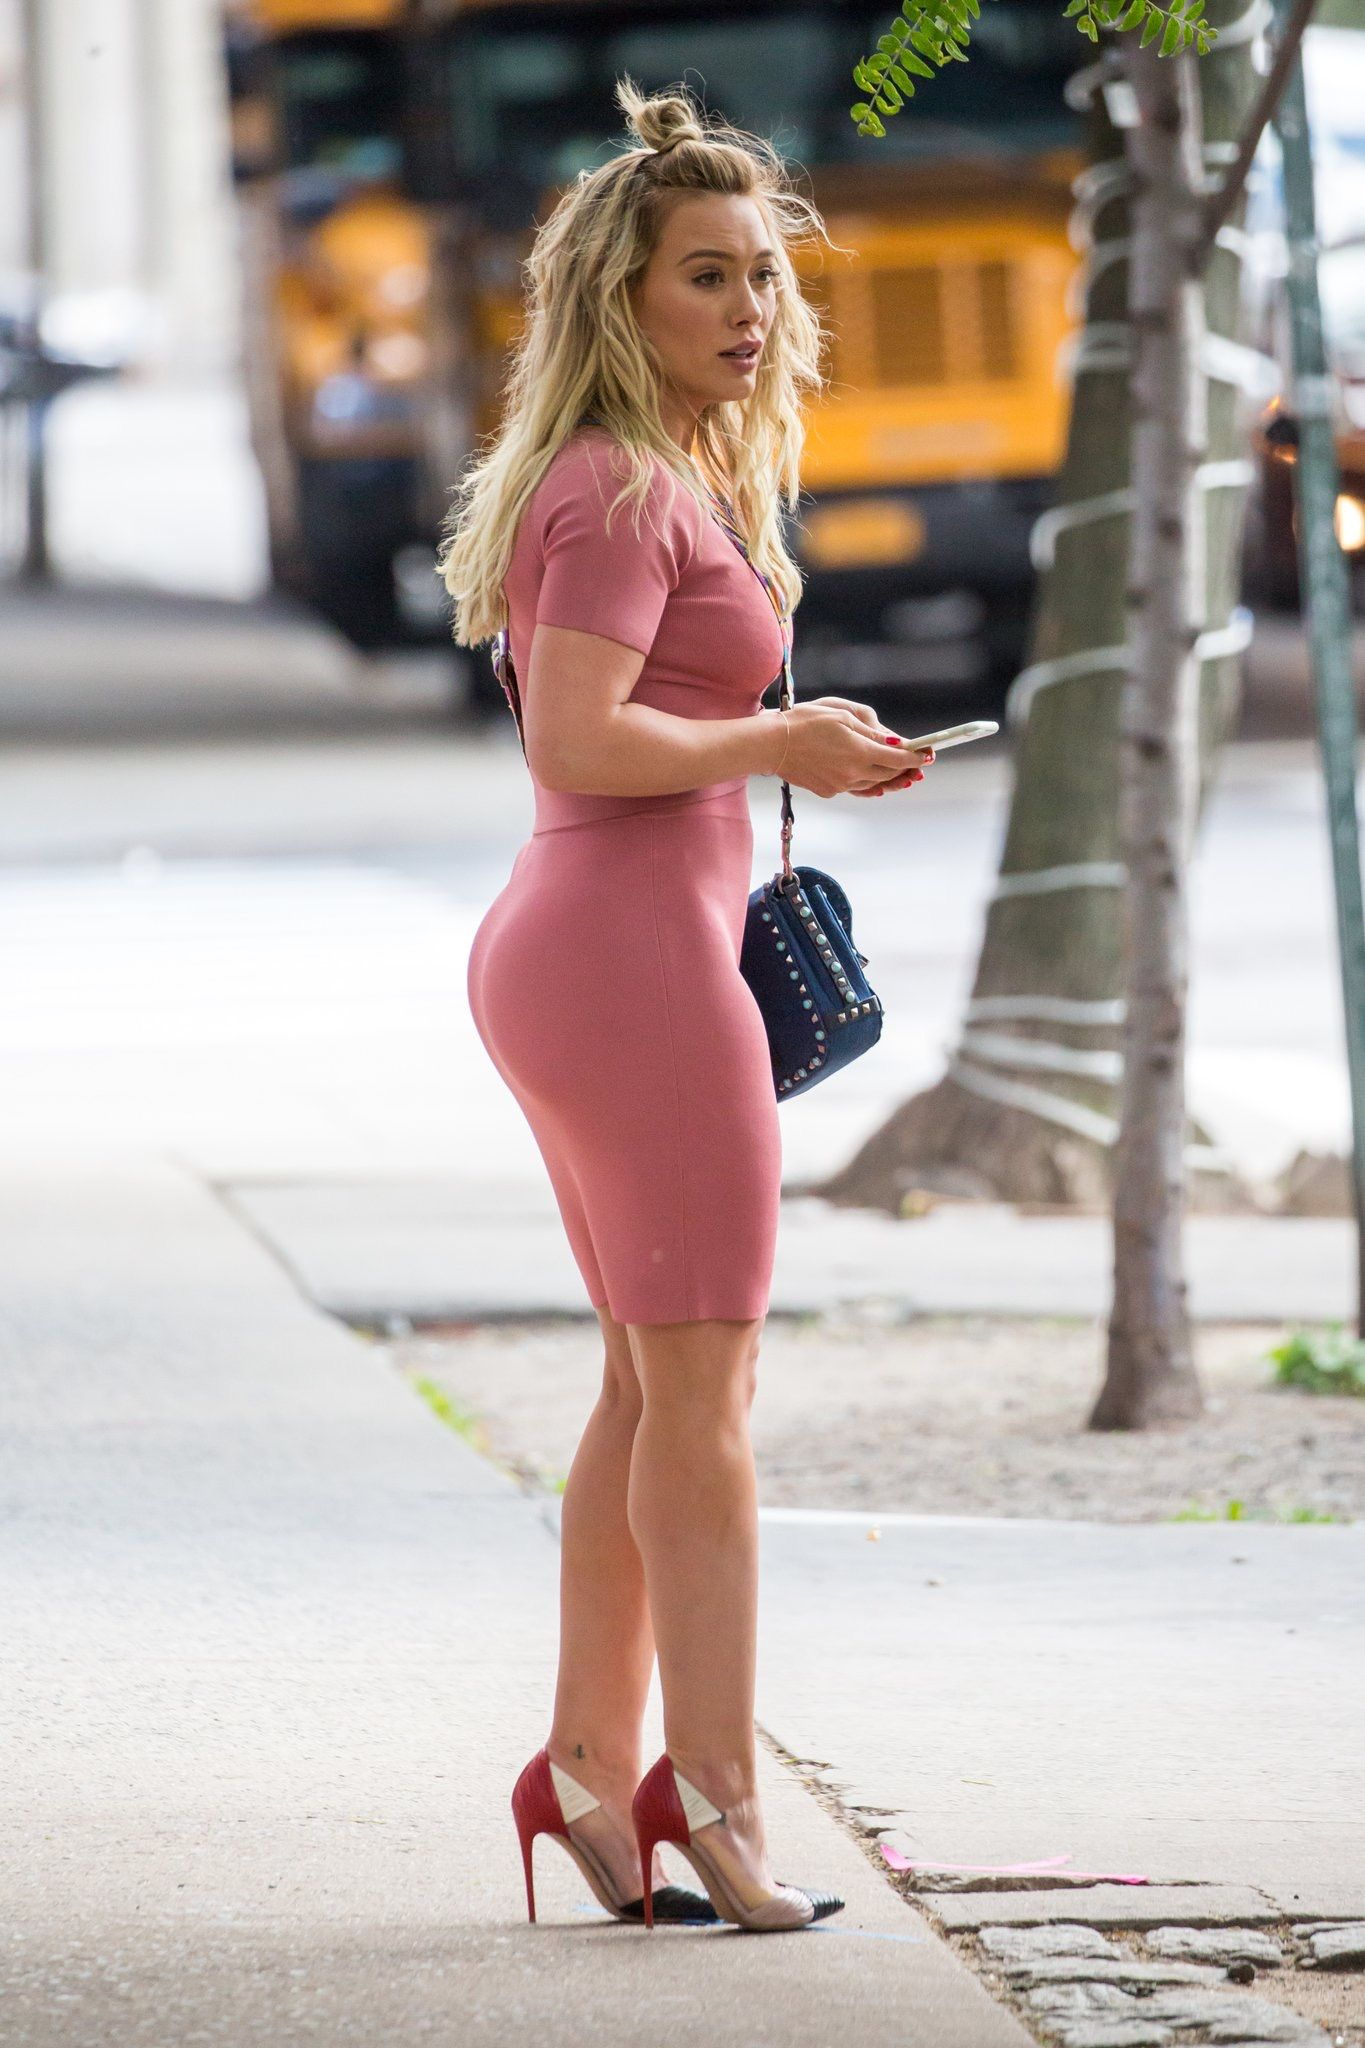 50 Best Hilary Images Hilary The Duff Hillary Duff